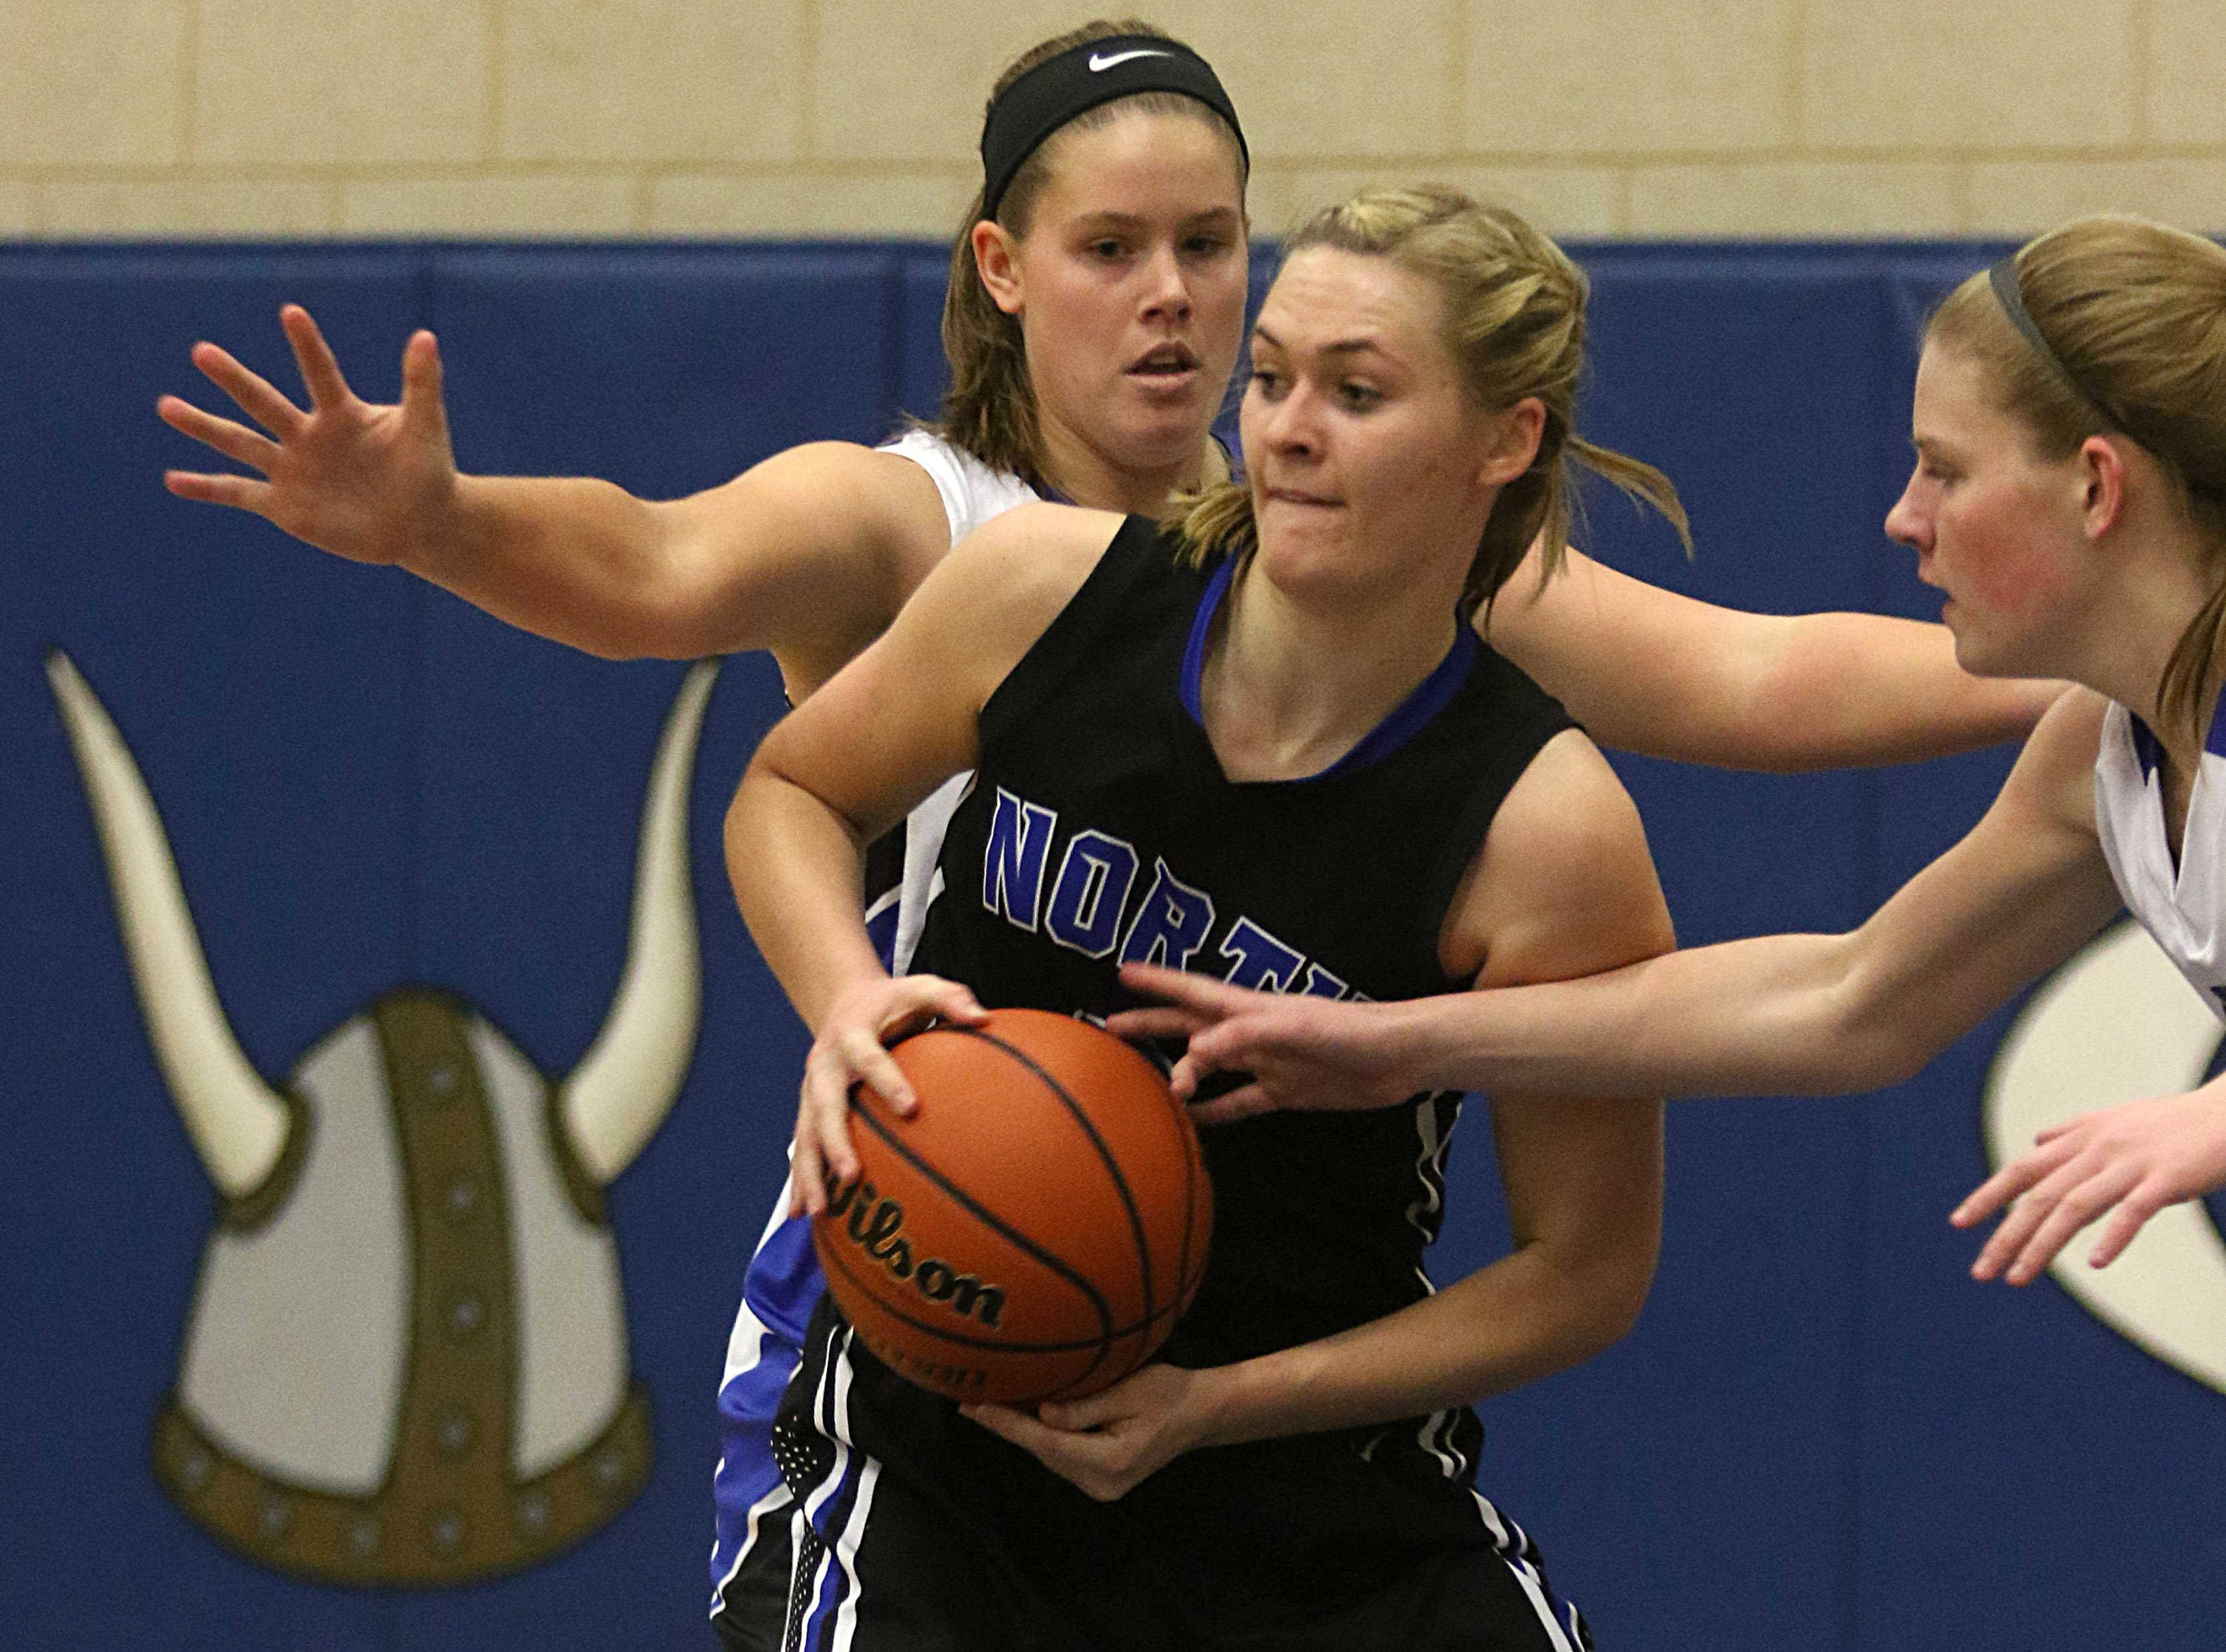 St. Charles North's Anna Davern tries to navigate her way through Geneva's defense during varsity girls basketball at Geneva Friday night.